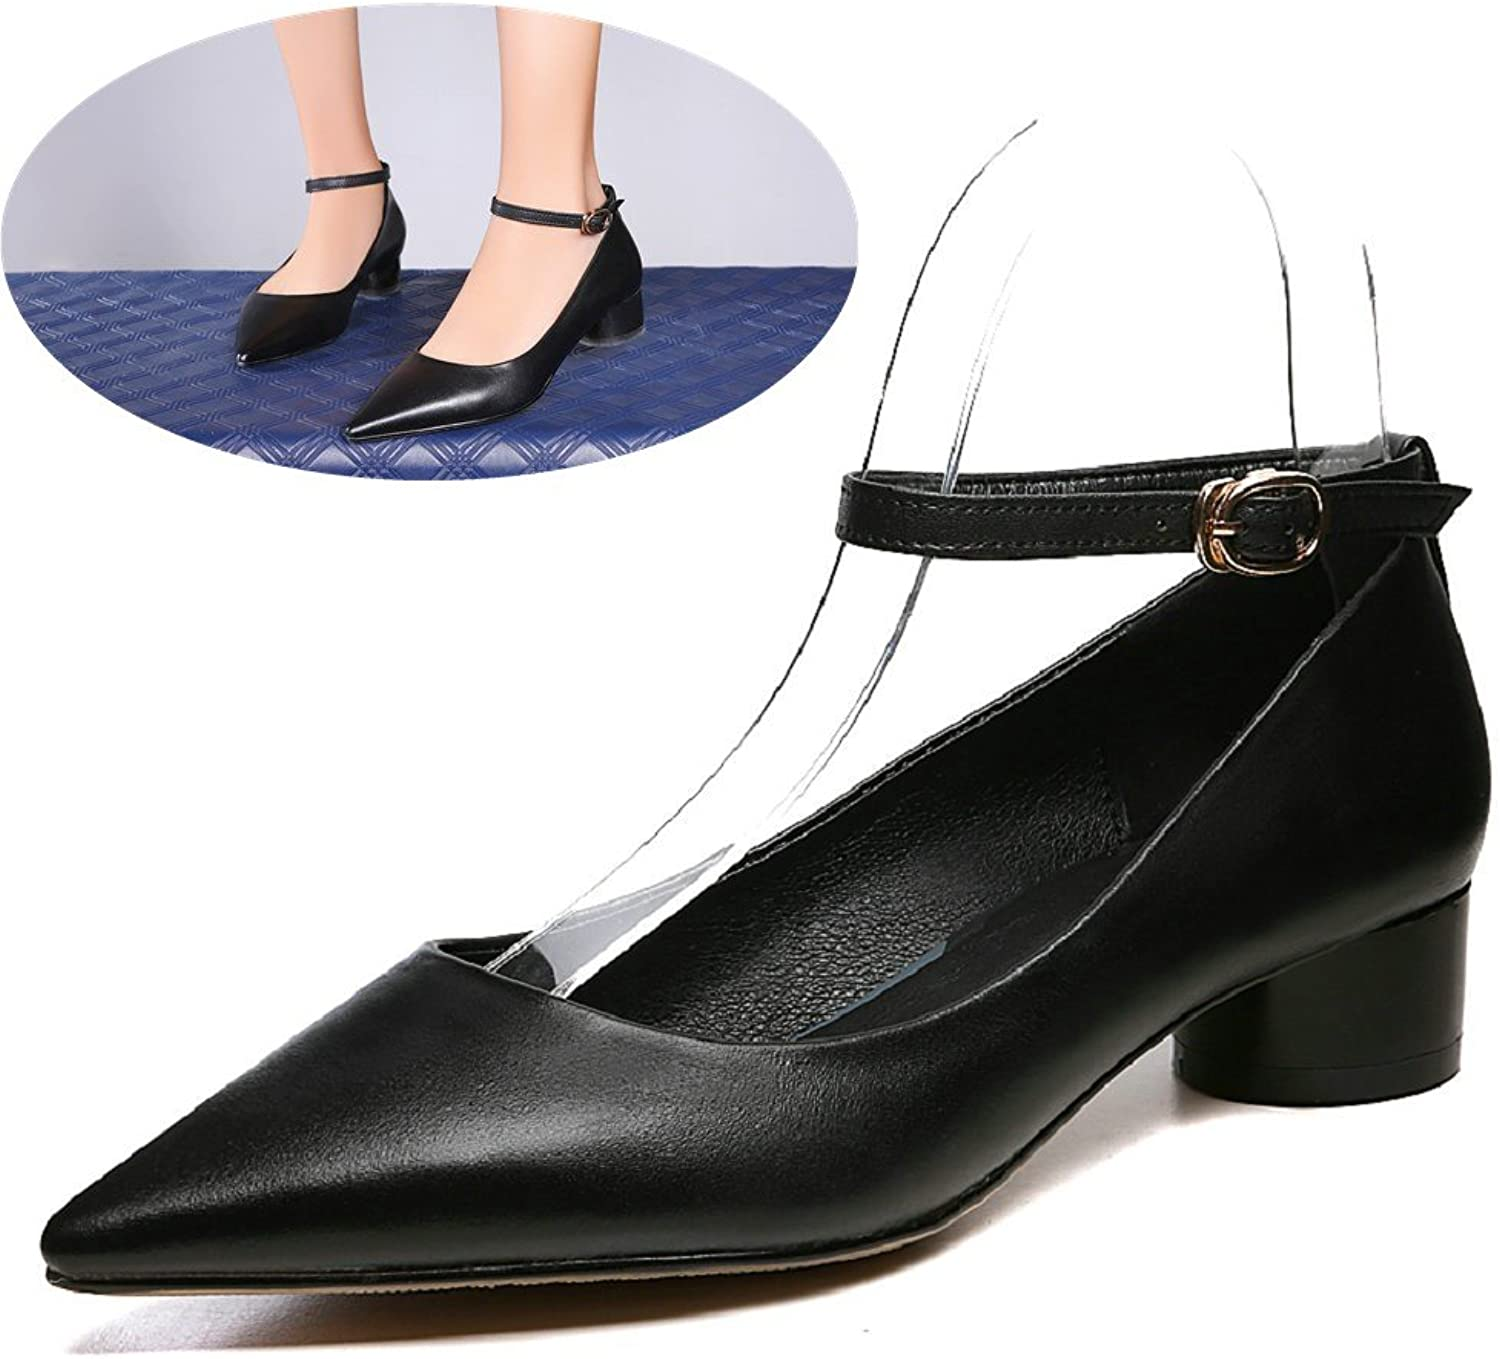 An Meng Xin Ling Women Leather Pumps shoes Comfort Low Heel Pointed Toe Work Black Chunky Heel Slip On Pumps